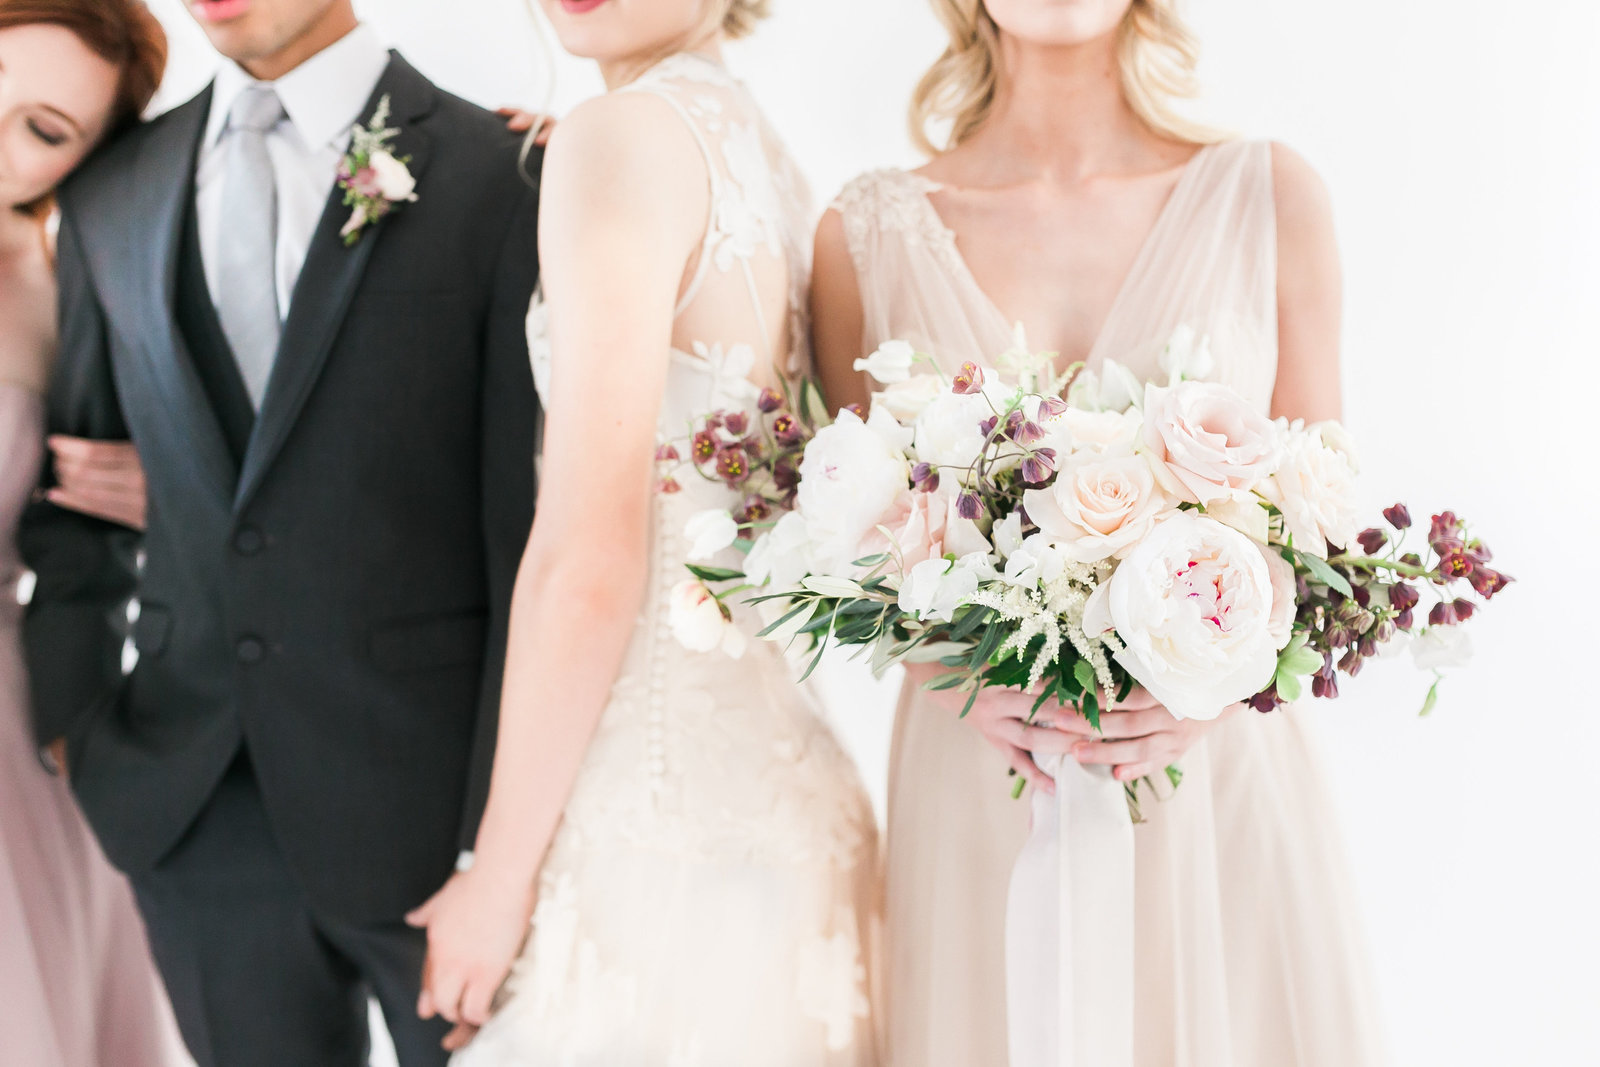 photo of a bride, groom and two bridesmaids in mauve and blush dresses with a bouquet of white, ivory, blush and eggplant